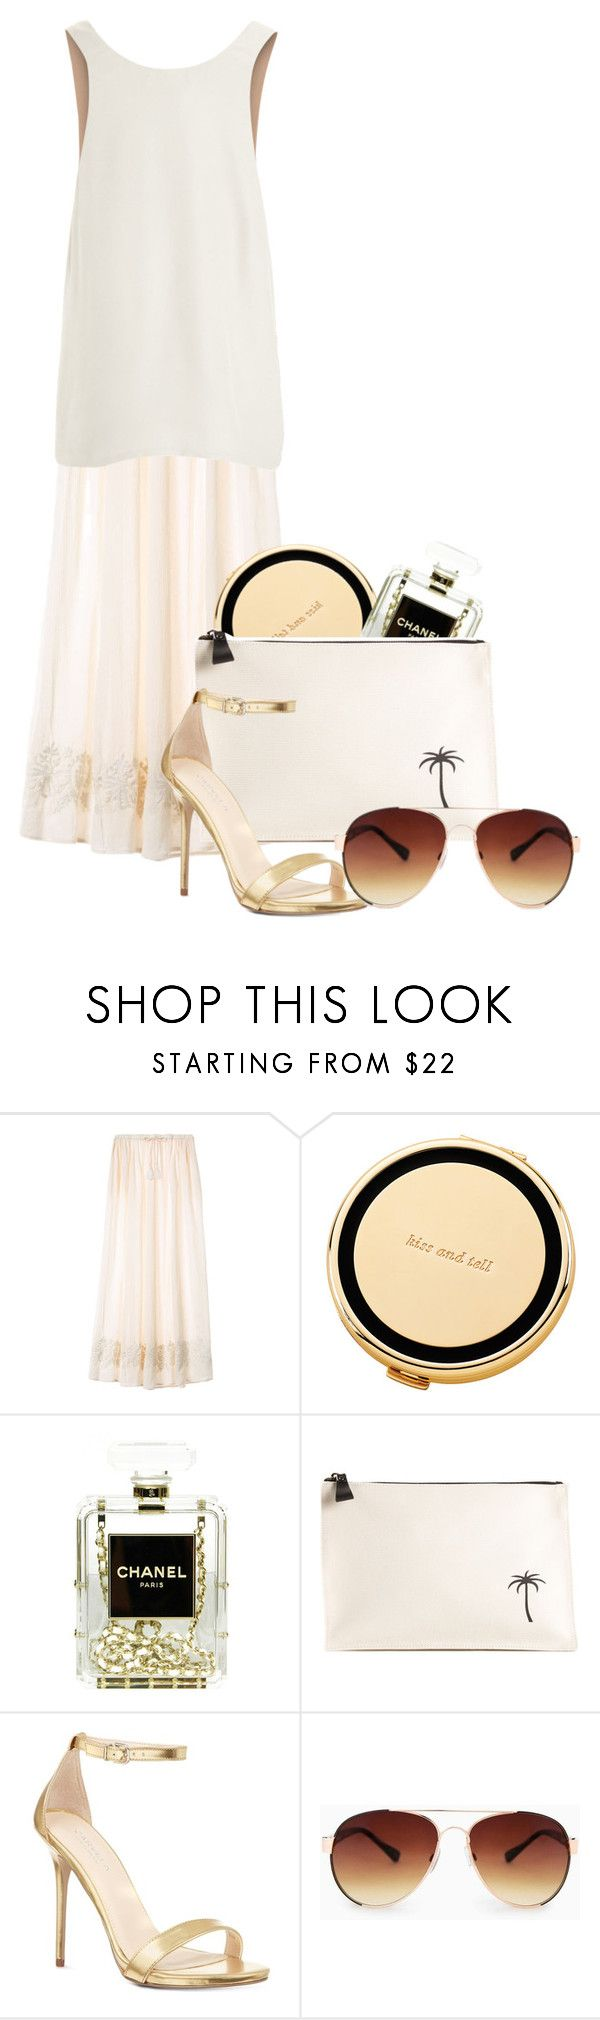 """""""resort wear"""" by cnle ❤ liked on Polyvore featuring Victoria's Secret, Kate Spade, Chanel, Tomas Maier, Carvela, MANGO and Chloé"""